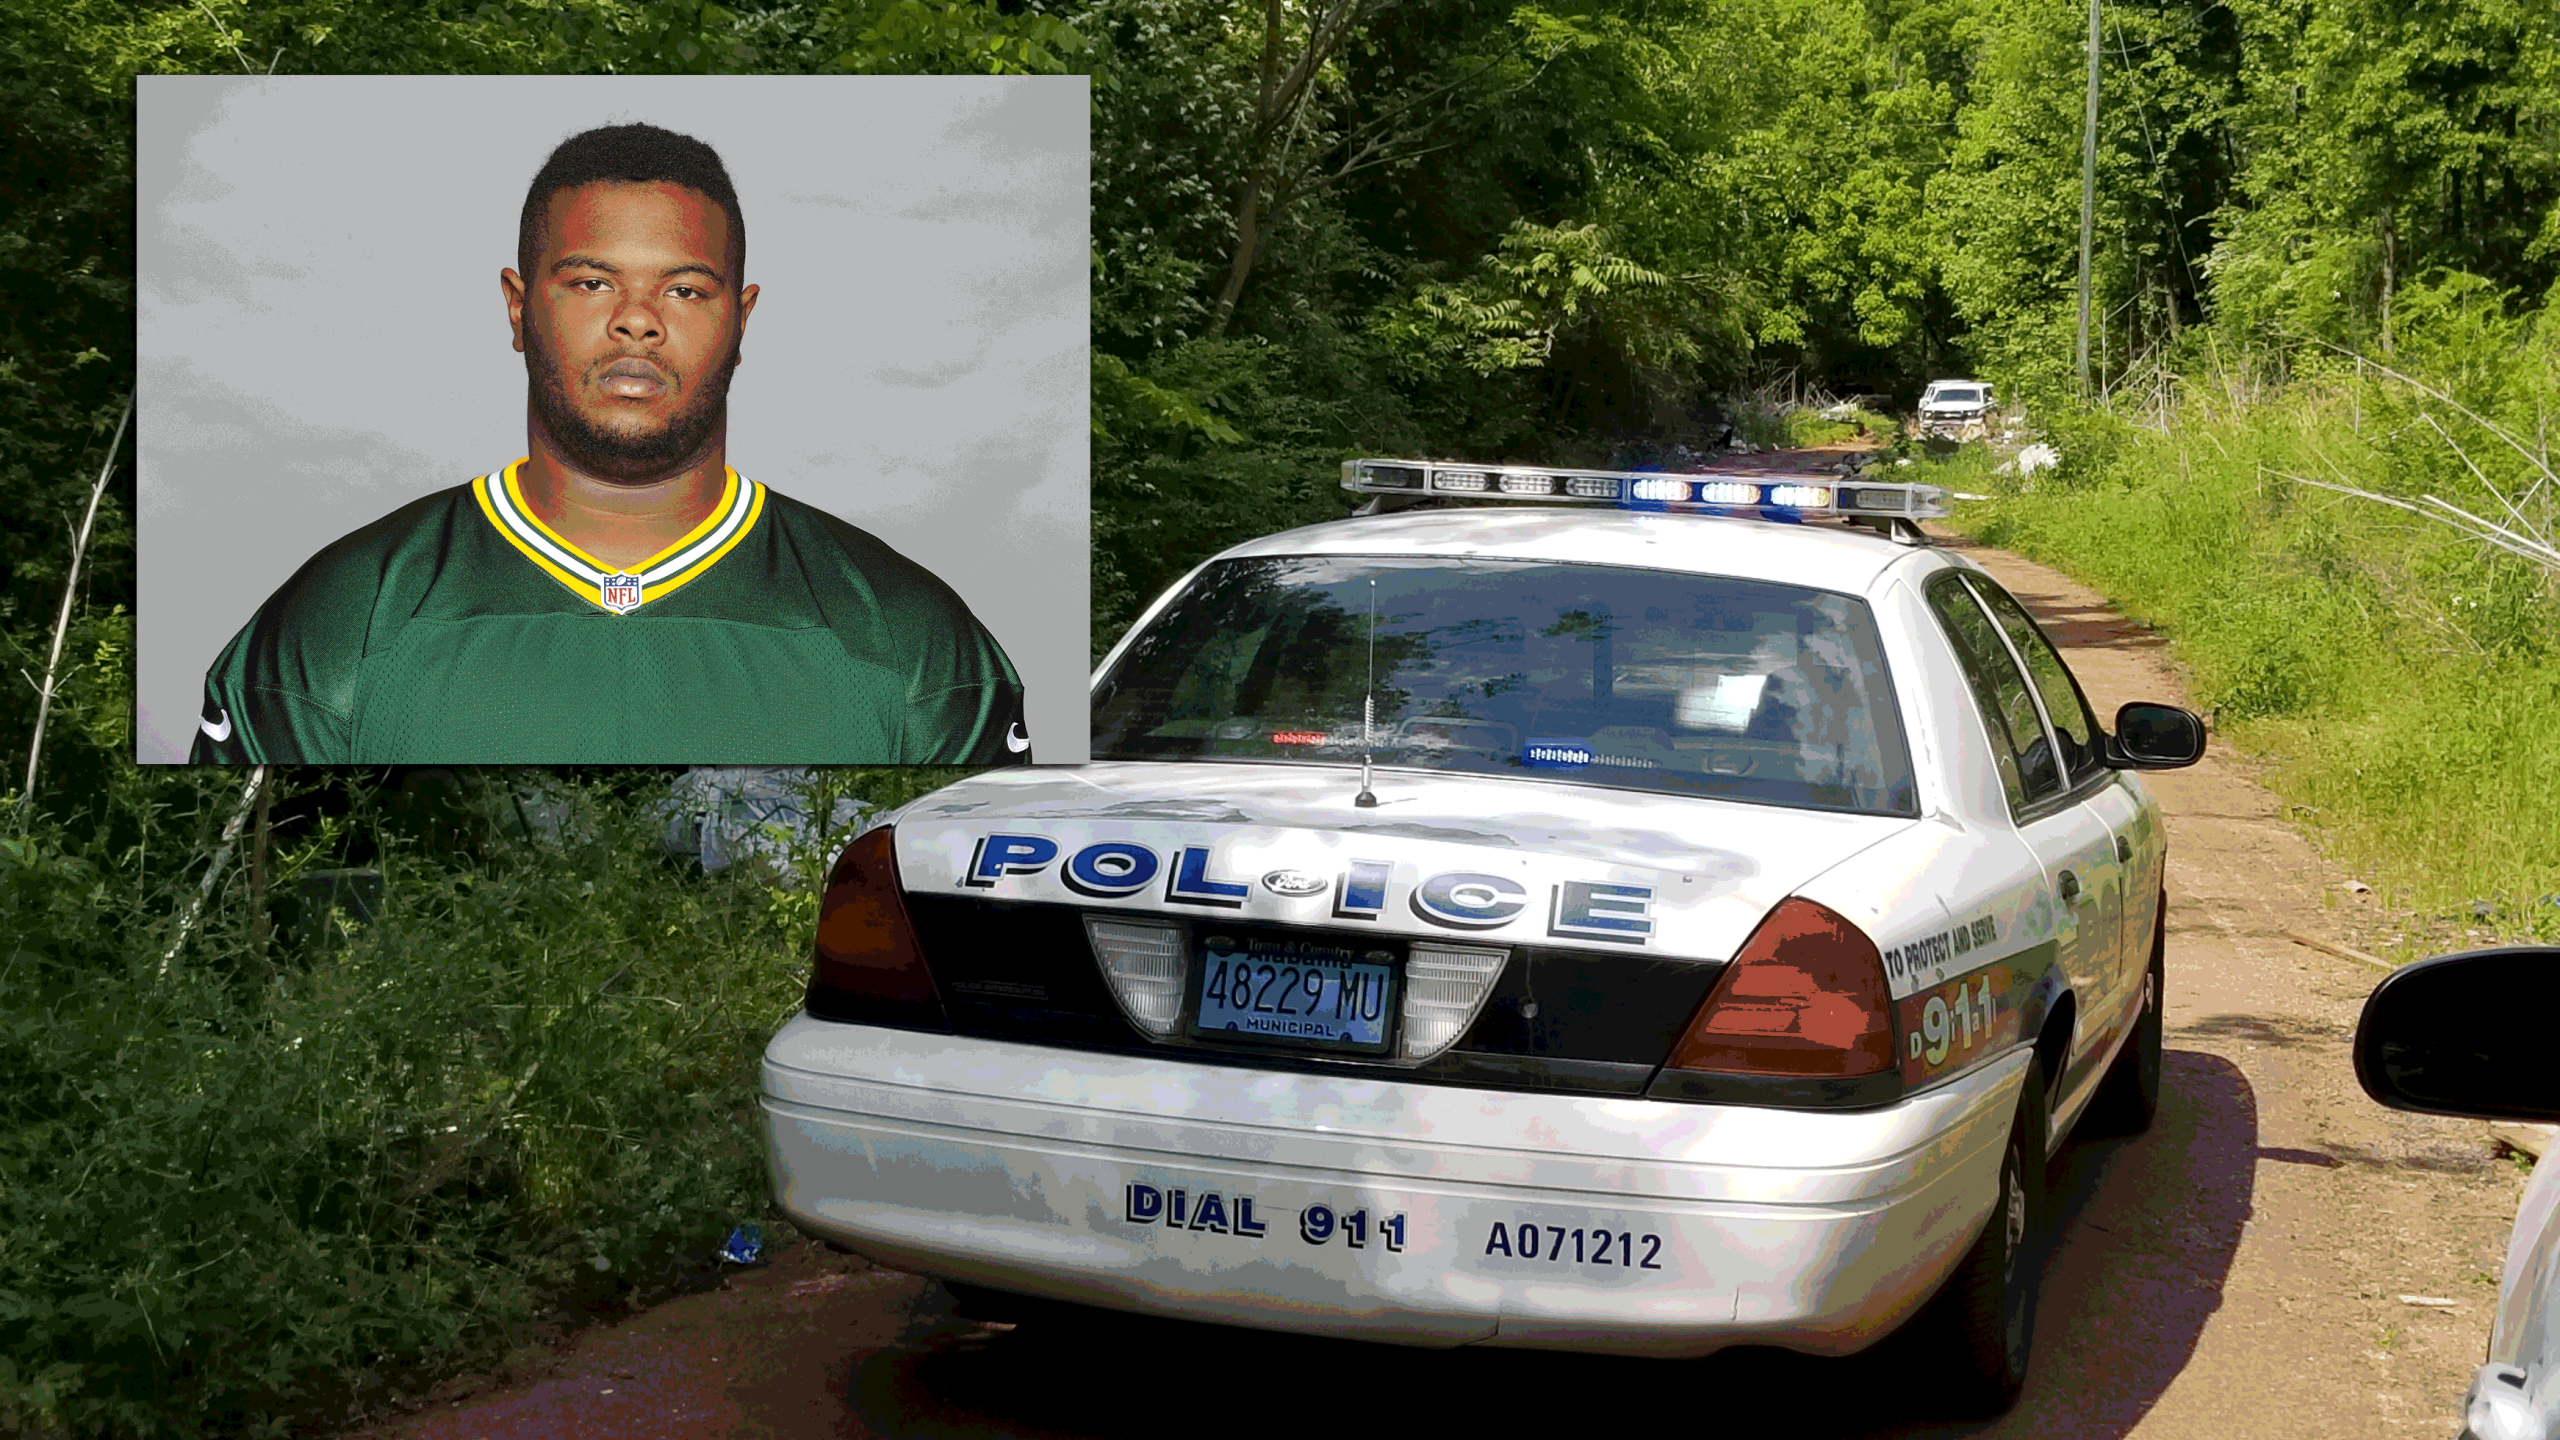 lipscomb-murder-retaliation-green-bay-packers-player_1525282715525.png